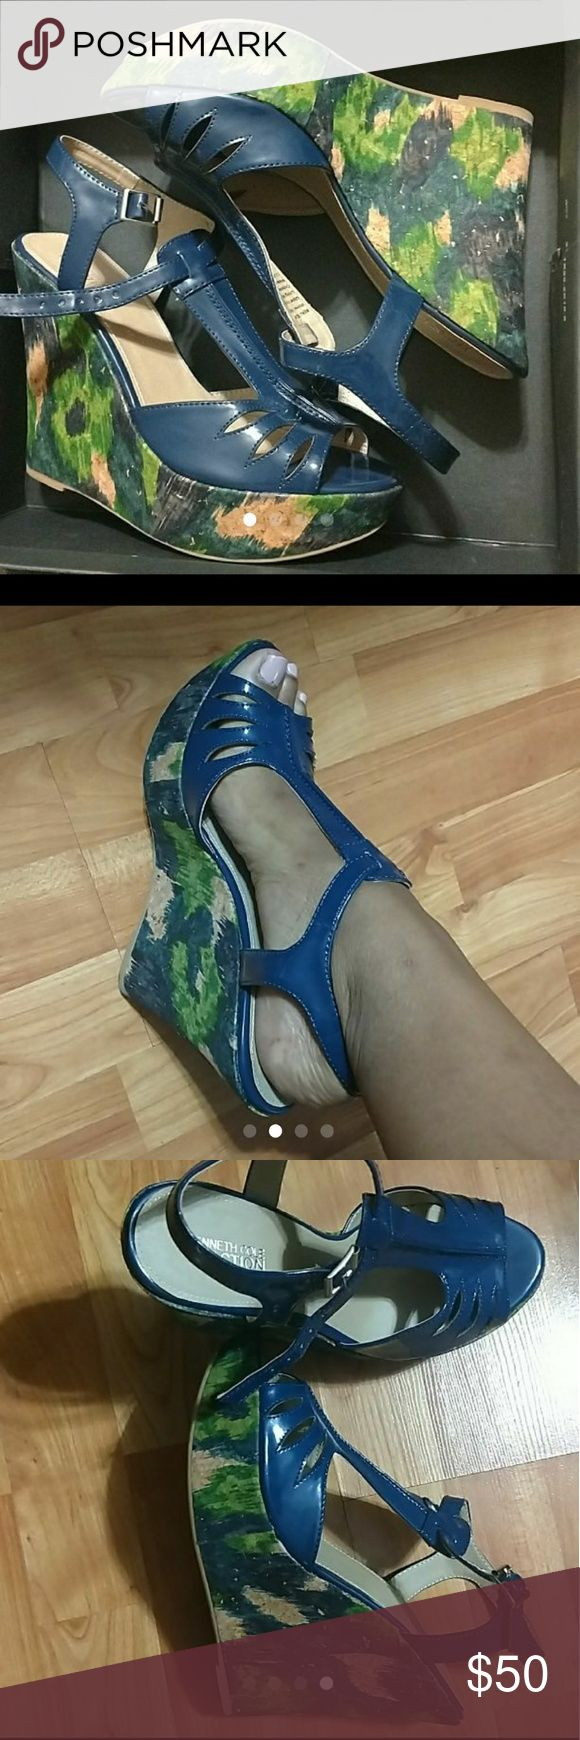 Kenneth cole reaction wedges Size: 8.5 med. Color: navy Blue, Armada green  Condition: Never worn, only took out of box for pictures 3.5 inch wedge Has grip to the bottom of the shoe for any surface Kenneth Cole Reaction Shoes Wedges